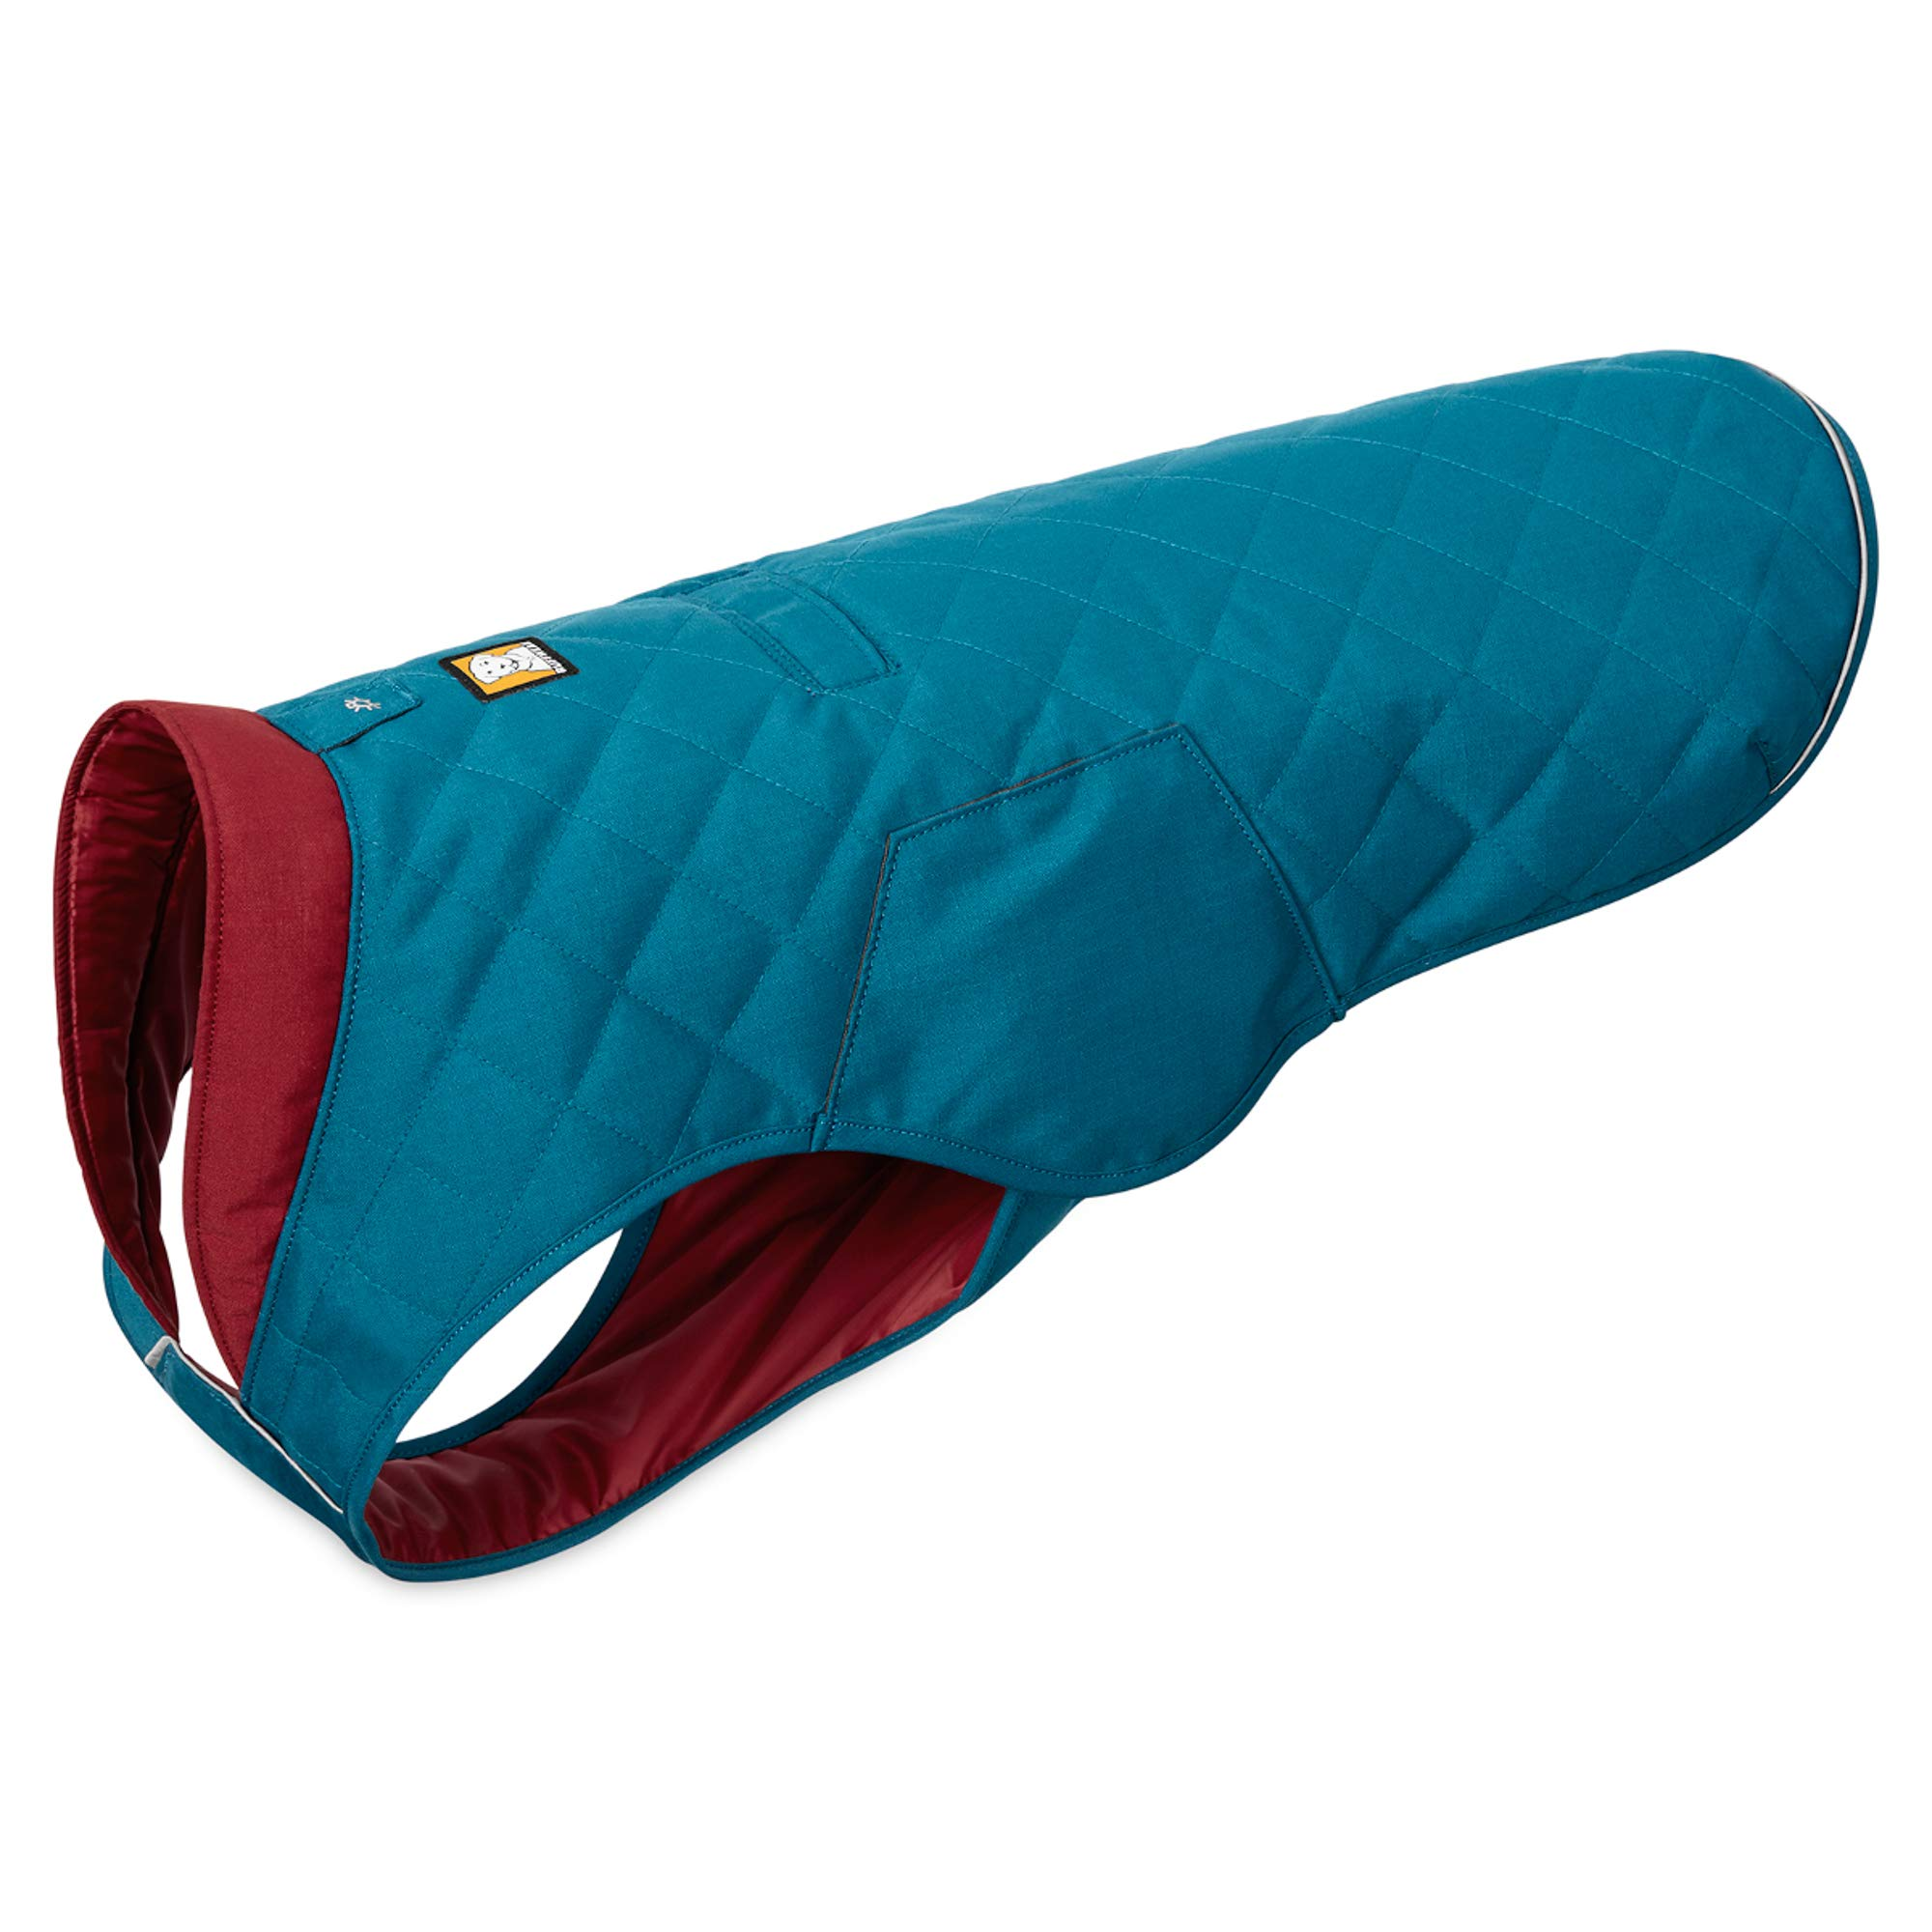 RUFFWEAR - Stumptown Insulated, Reflective Cold Weather Jacket for Dogs, Metolius Blue, Large by RUFFWEAR